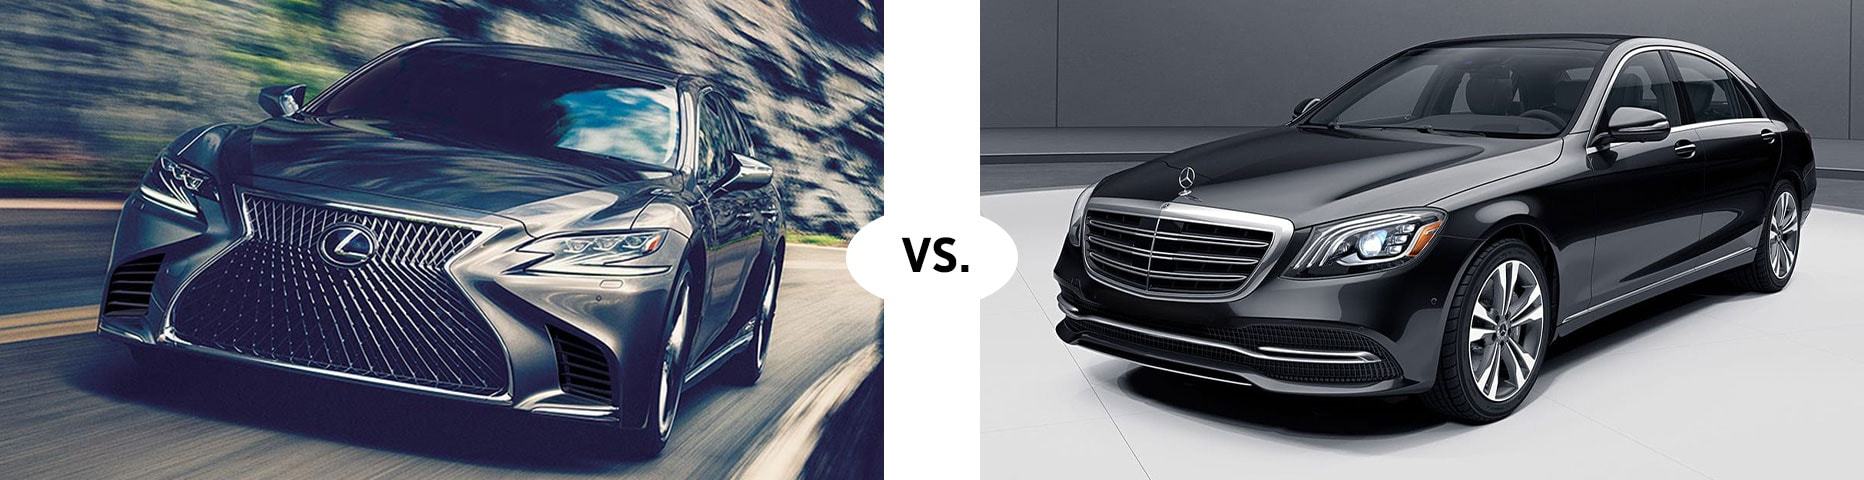 2019 LEXUS LS 500 VS. MERCEDES BENZ S 450